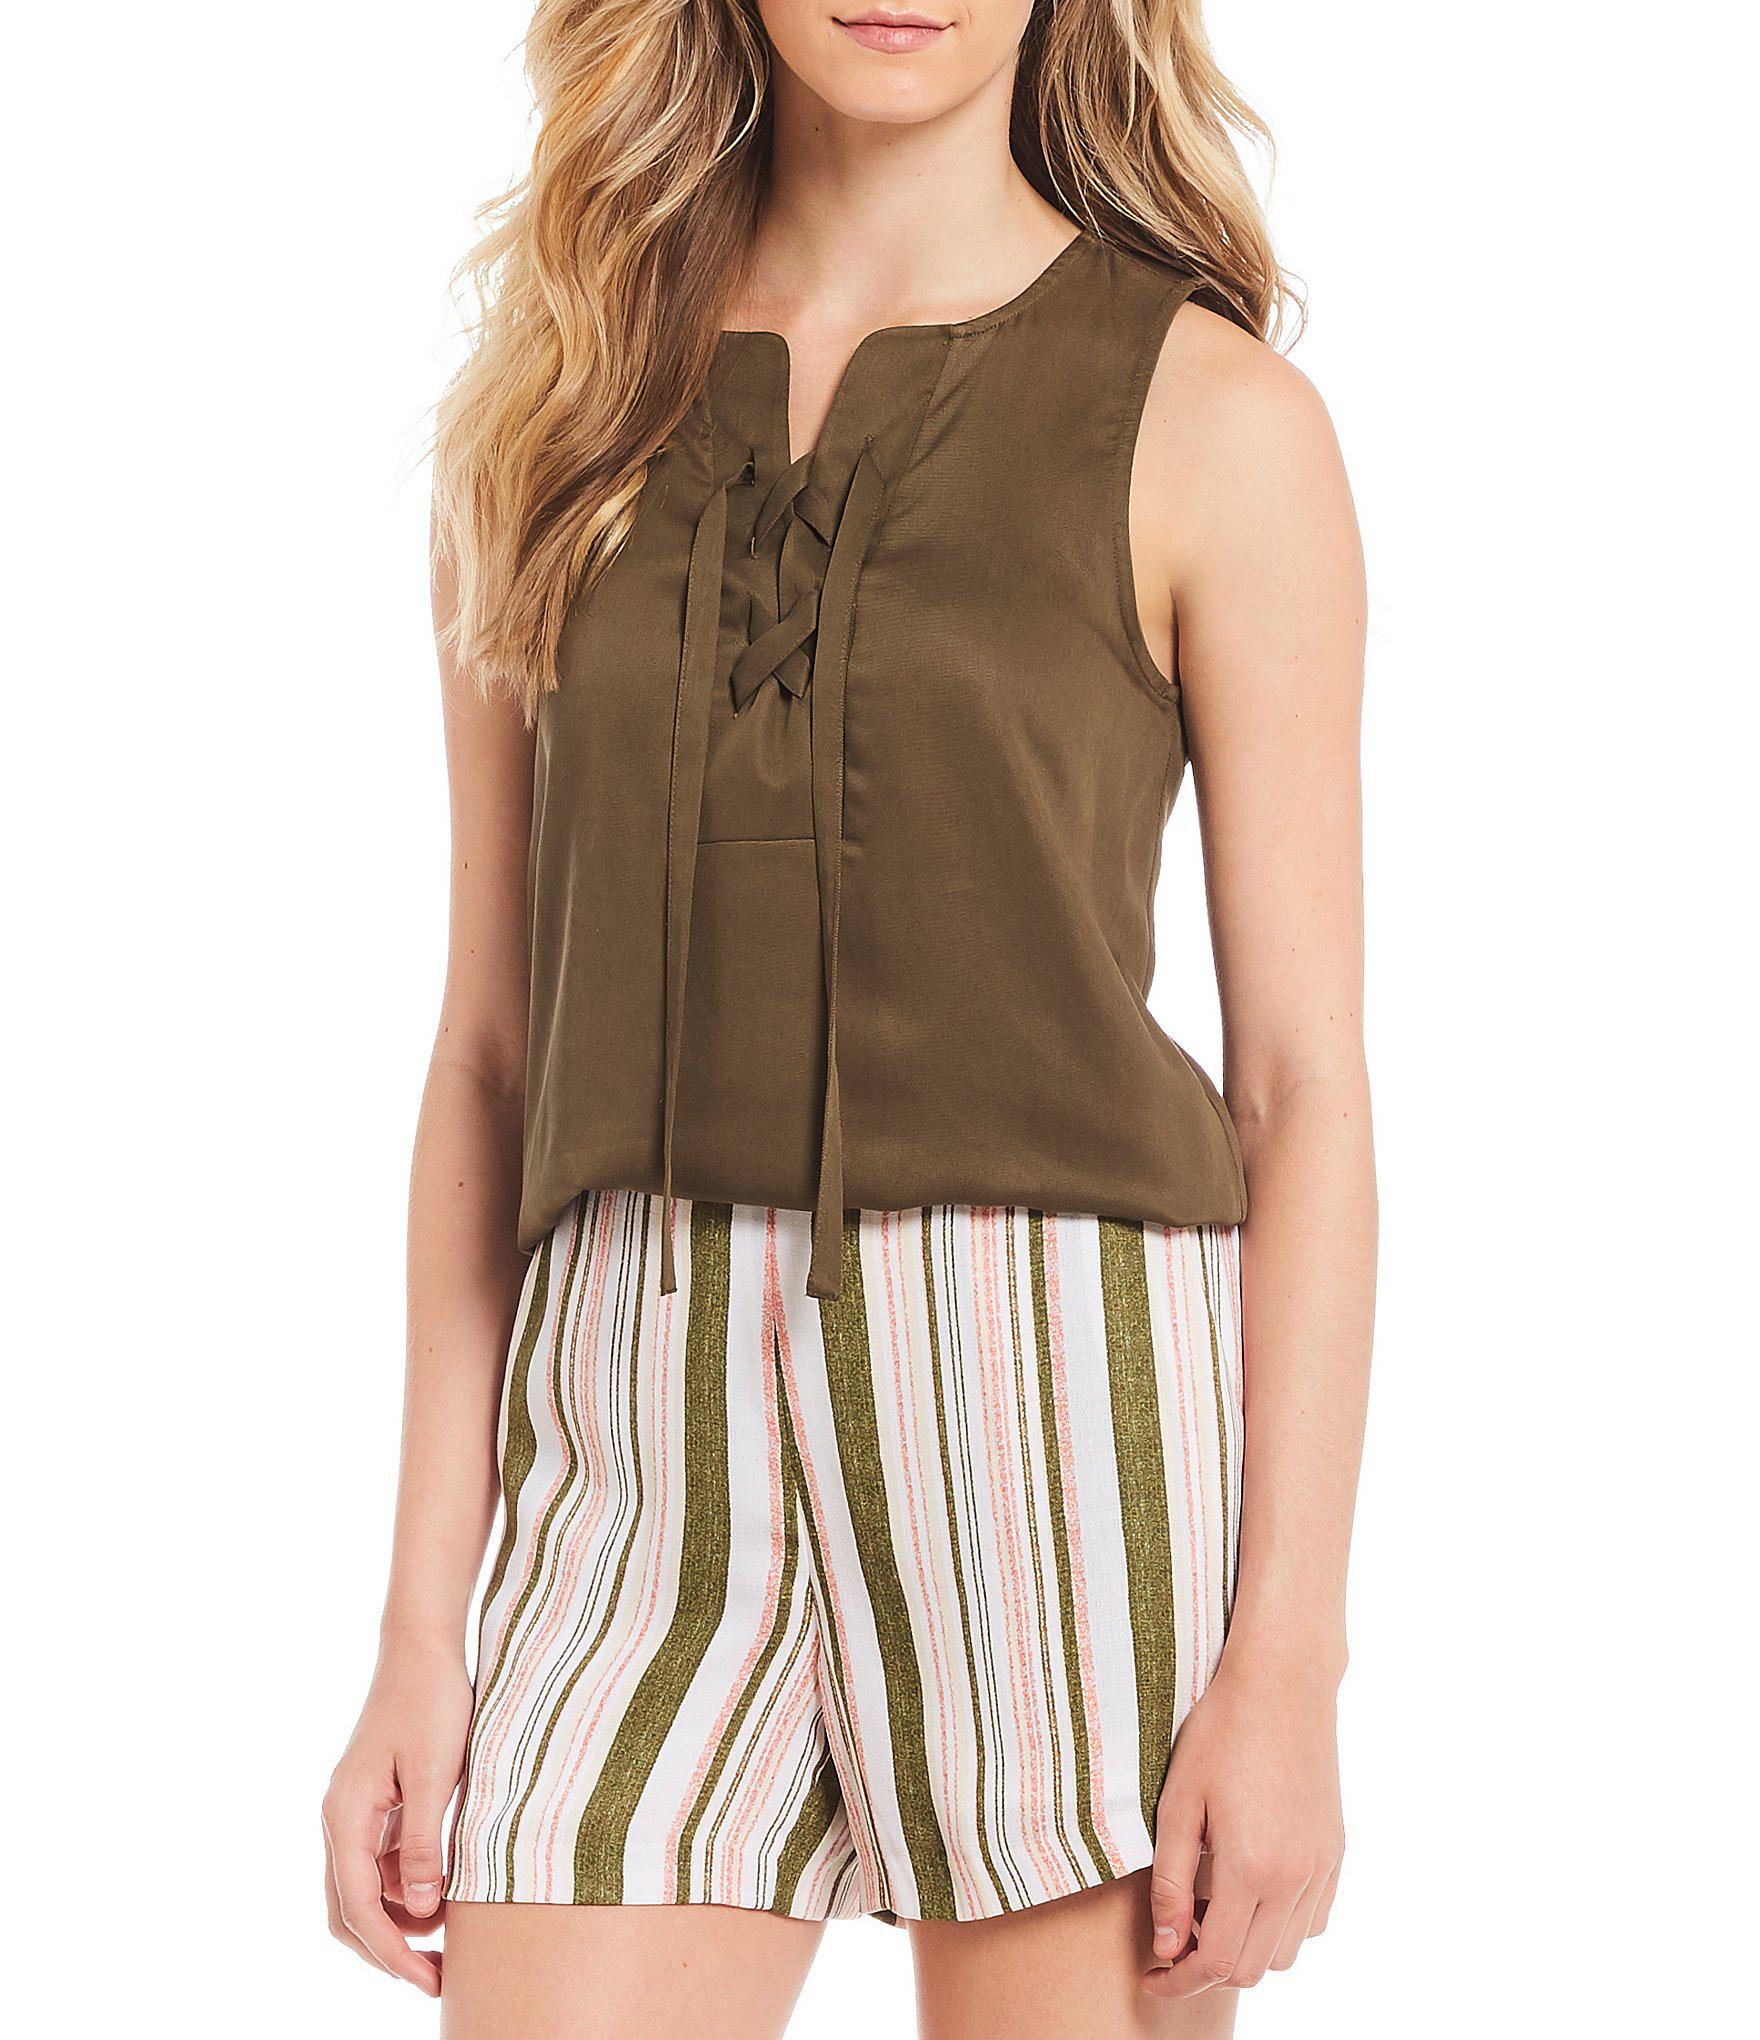 f6572e4a991b5 Lyst - Cremieux Fabby Blouse in Green